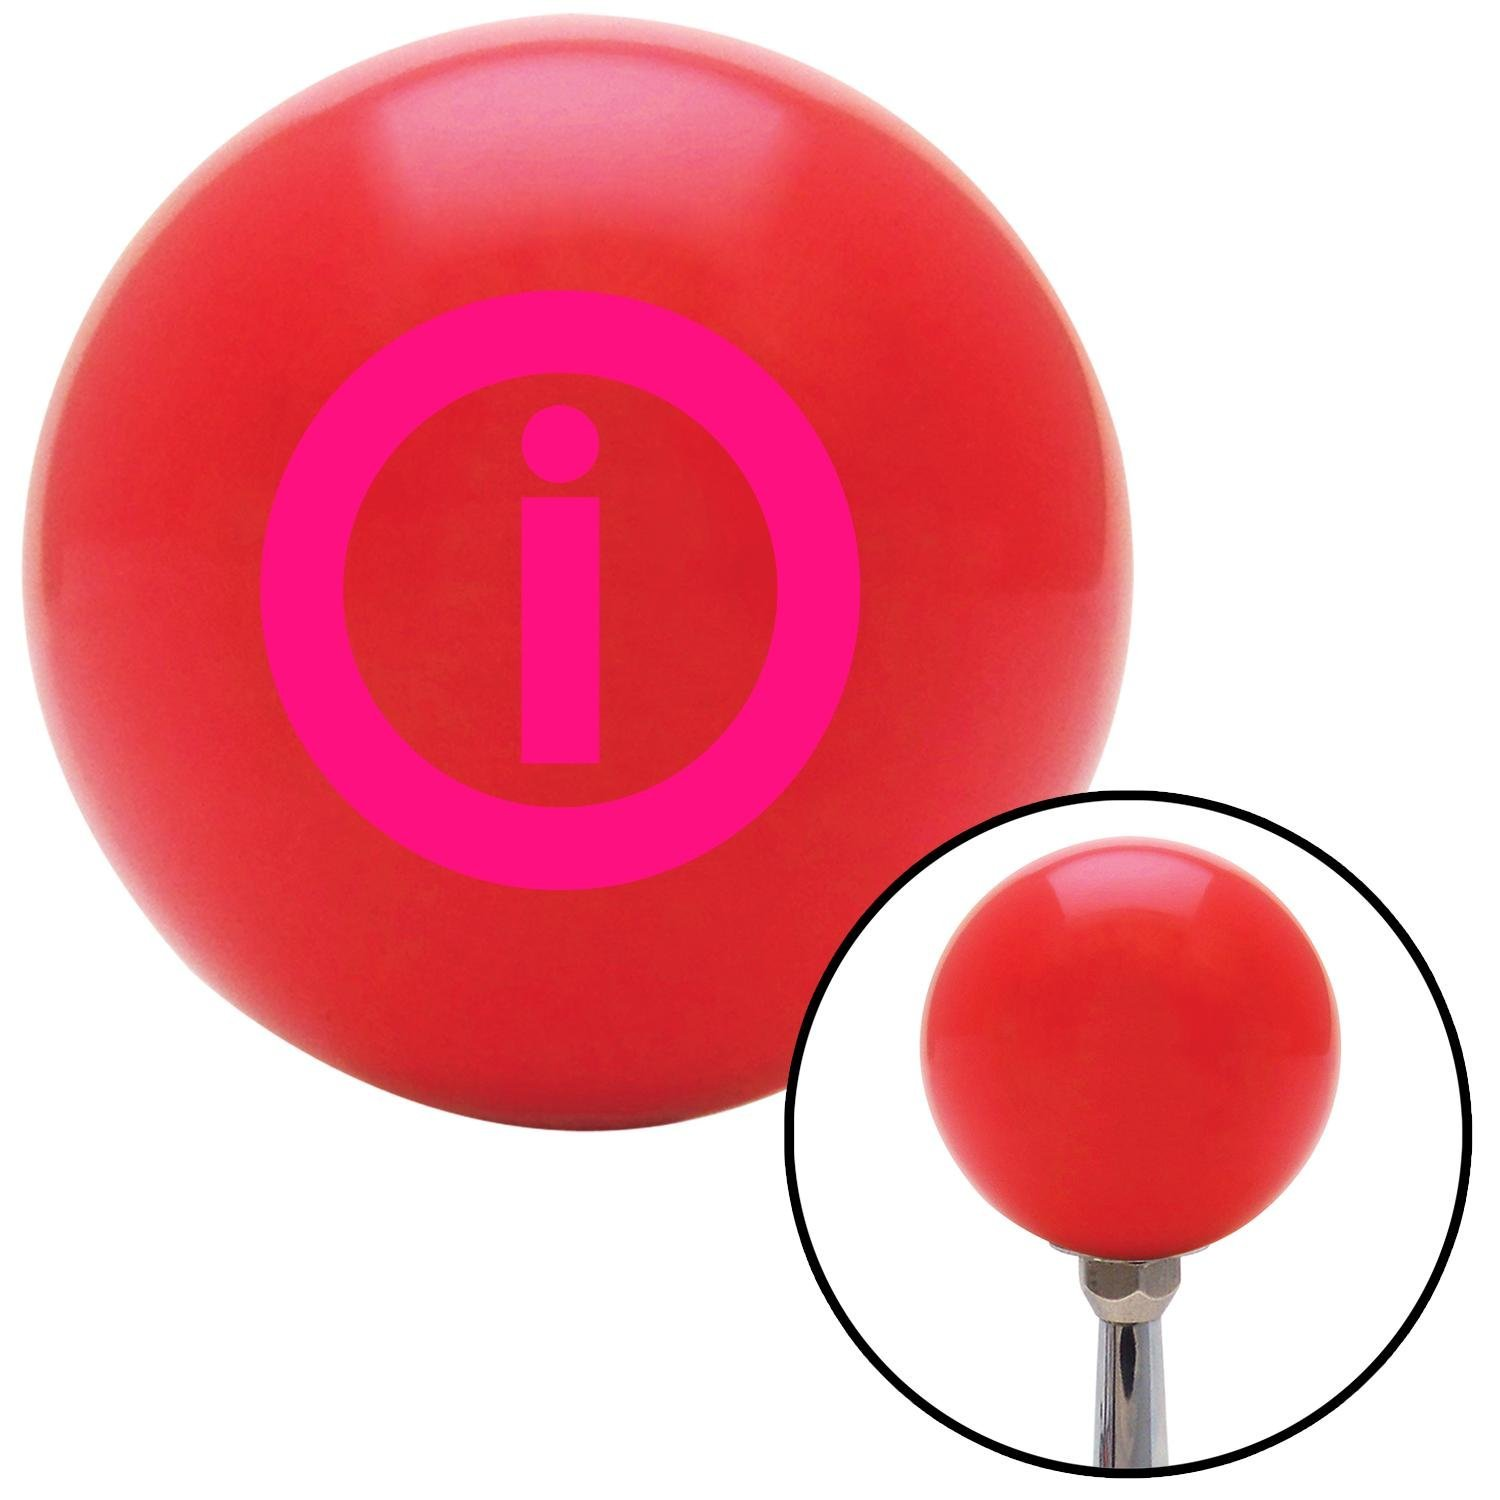 American Shifter 101754 Red Shift Knob with M16 x 1.5 Insert Pink Info